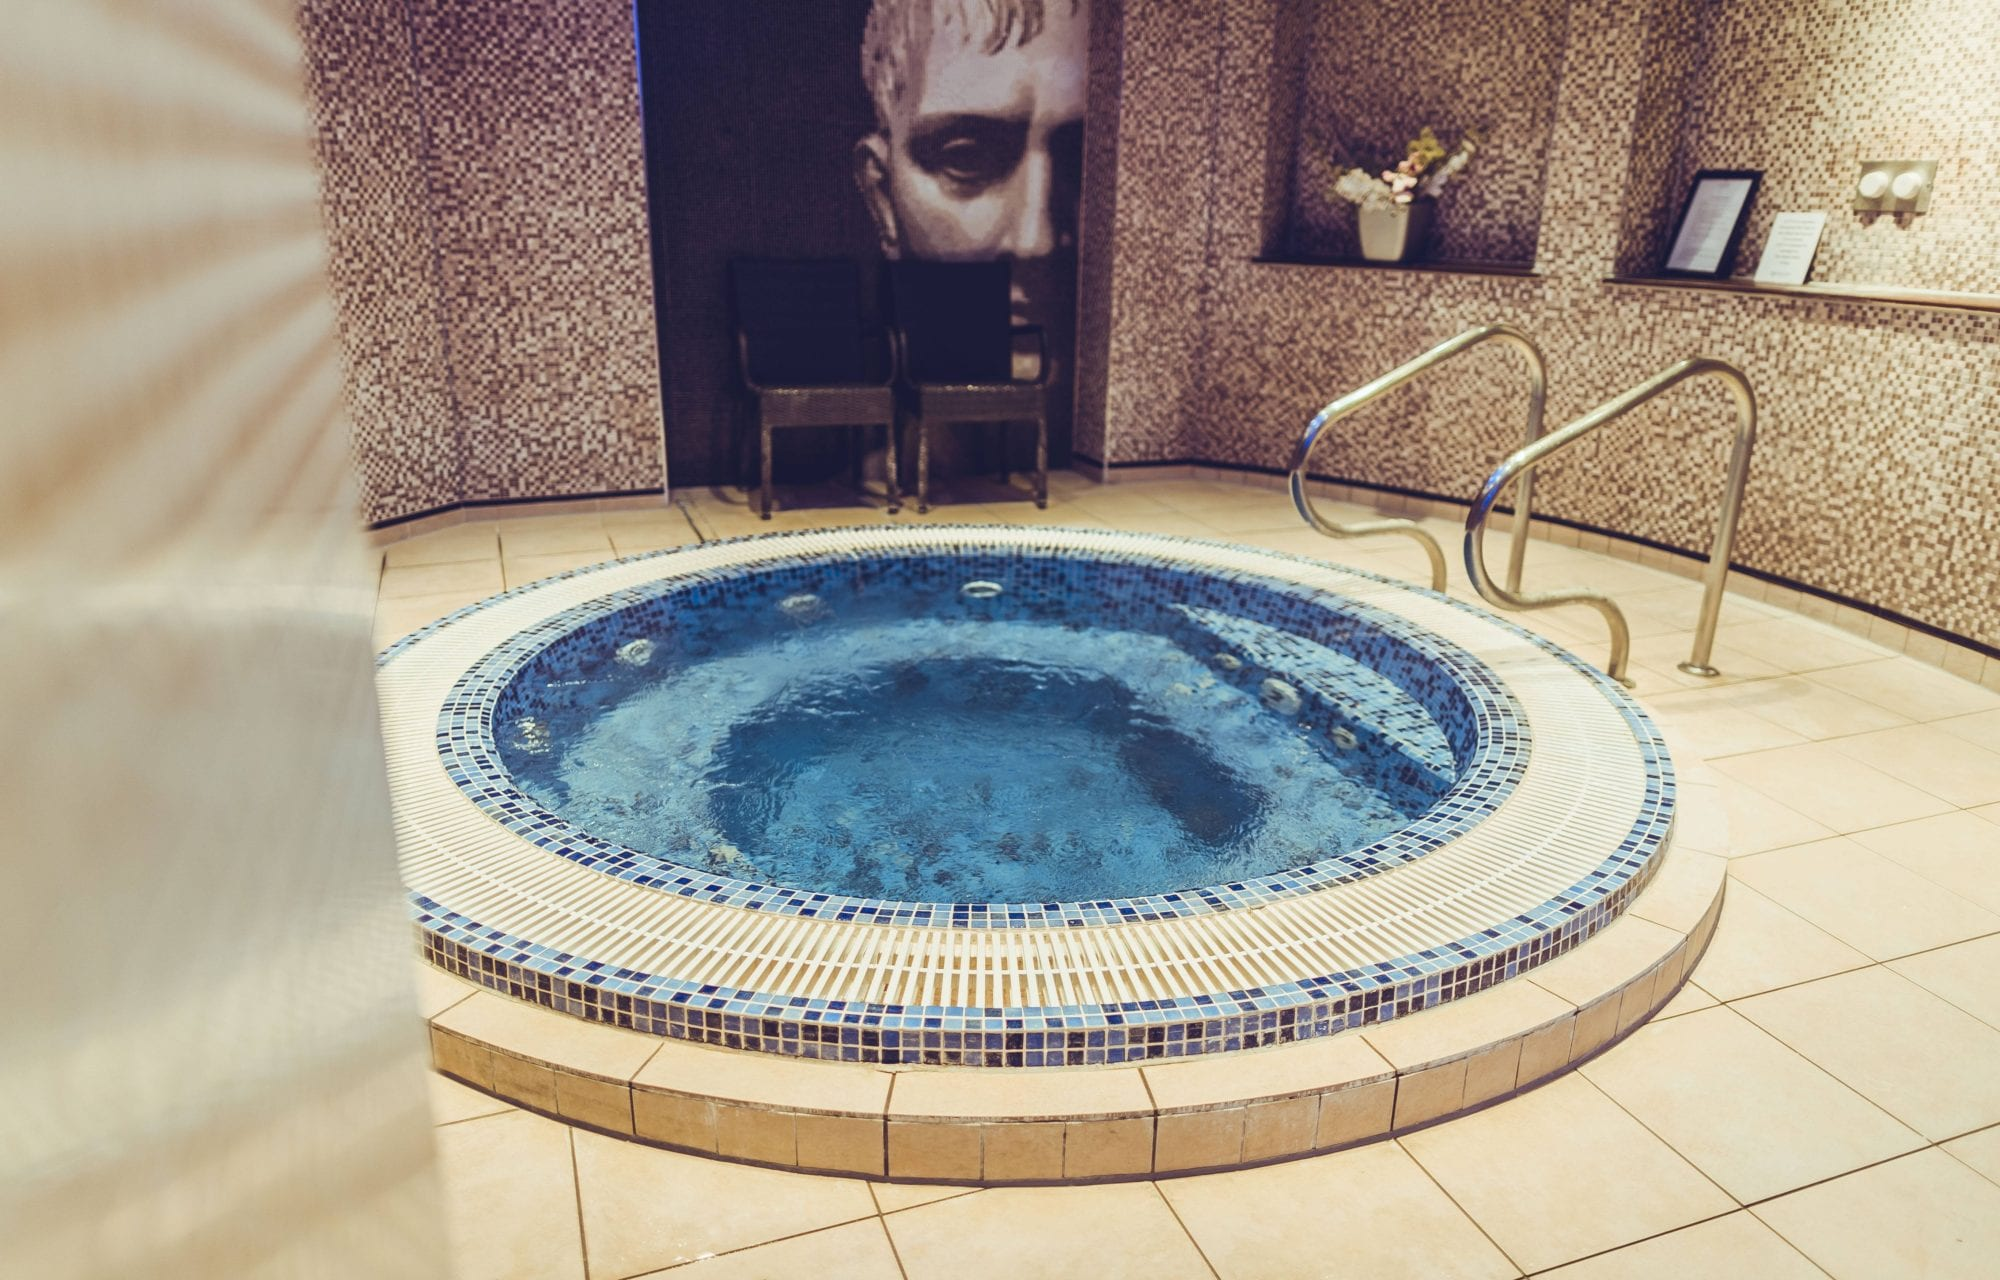 The Grand Spa Whirl Pool